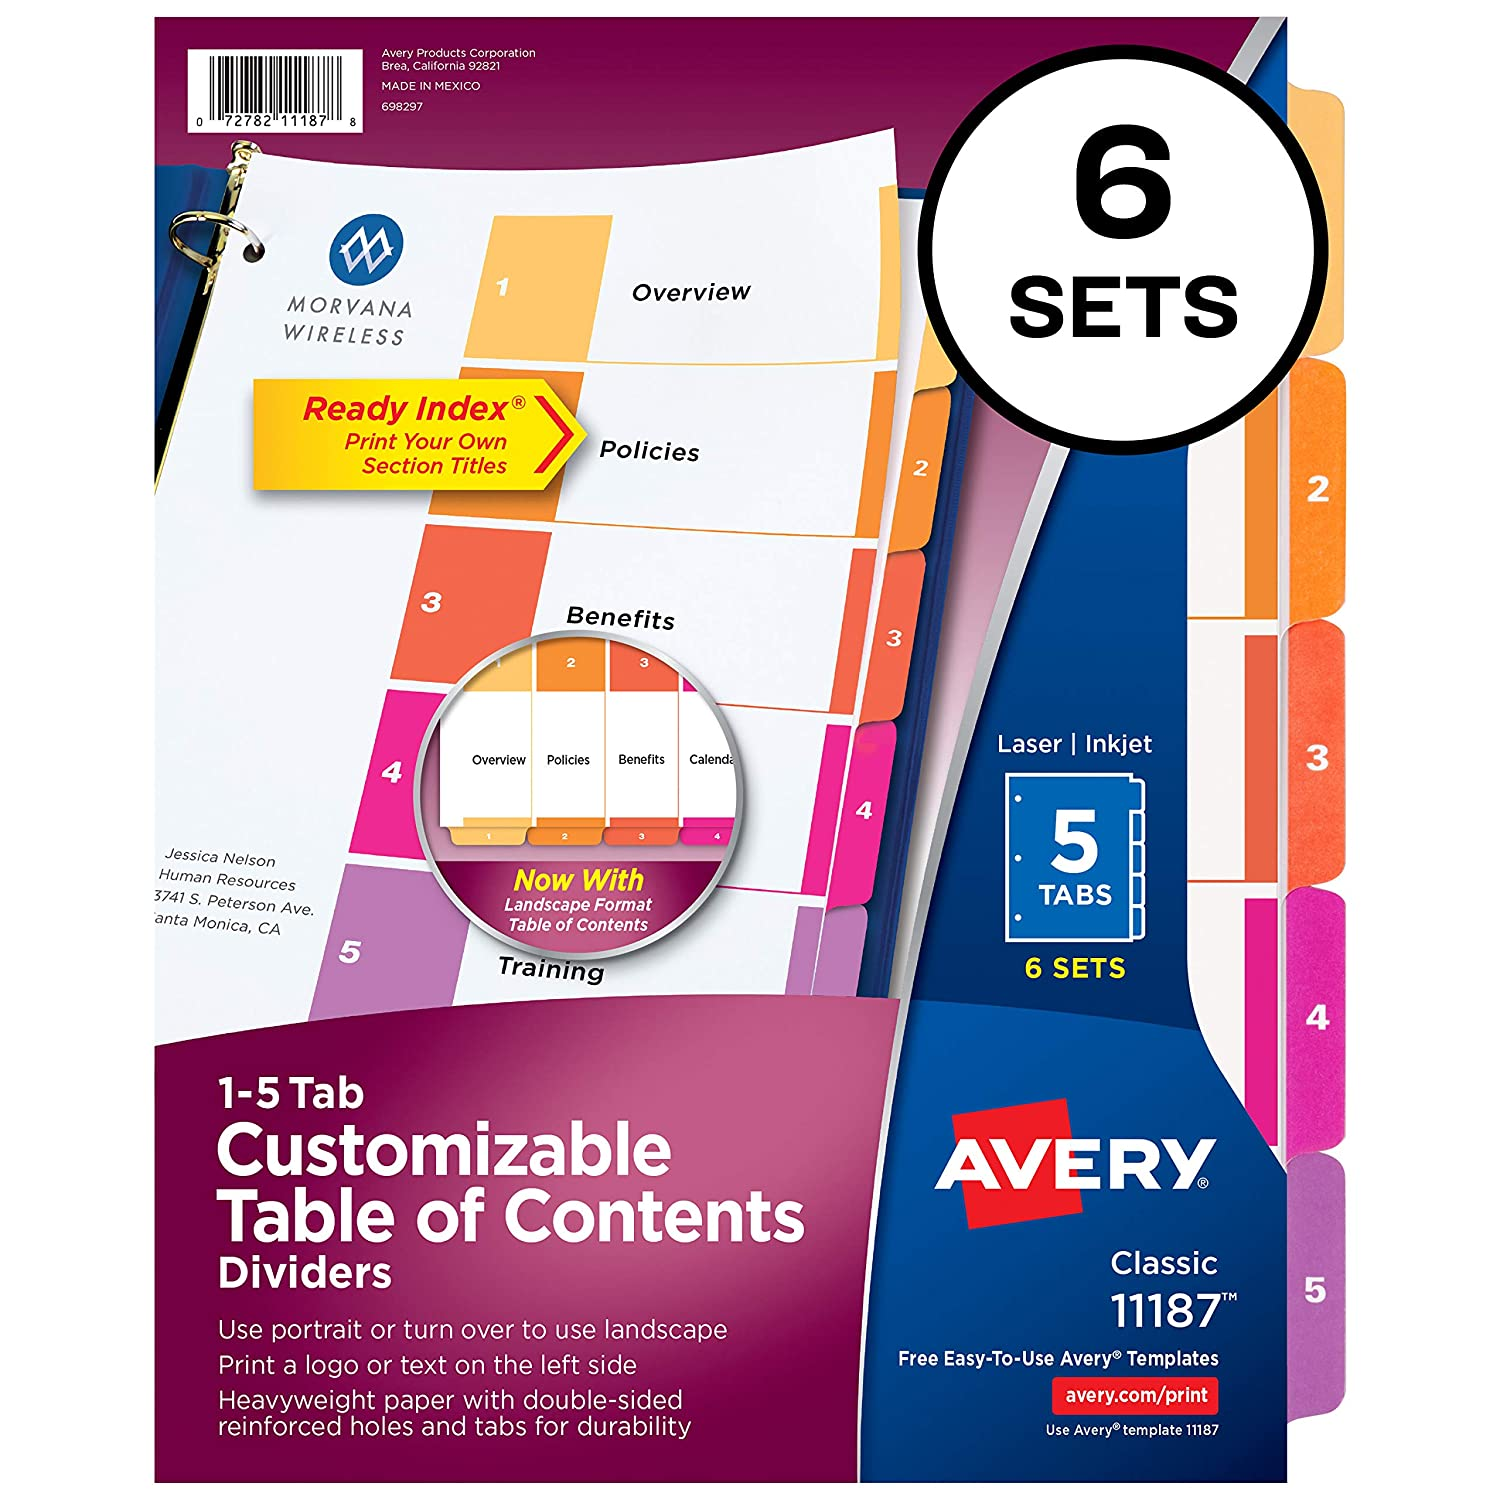 B00006IBW4 Avery 5-Tab Dividers for 3 Ring Binders, Customizable Table of Contents, Multicolor Tabs, 6 Sets (11187) 81AvU0QZ-IL